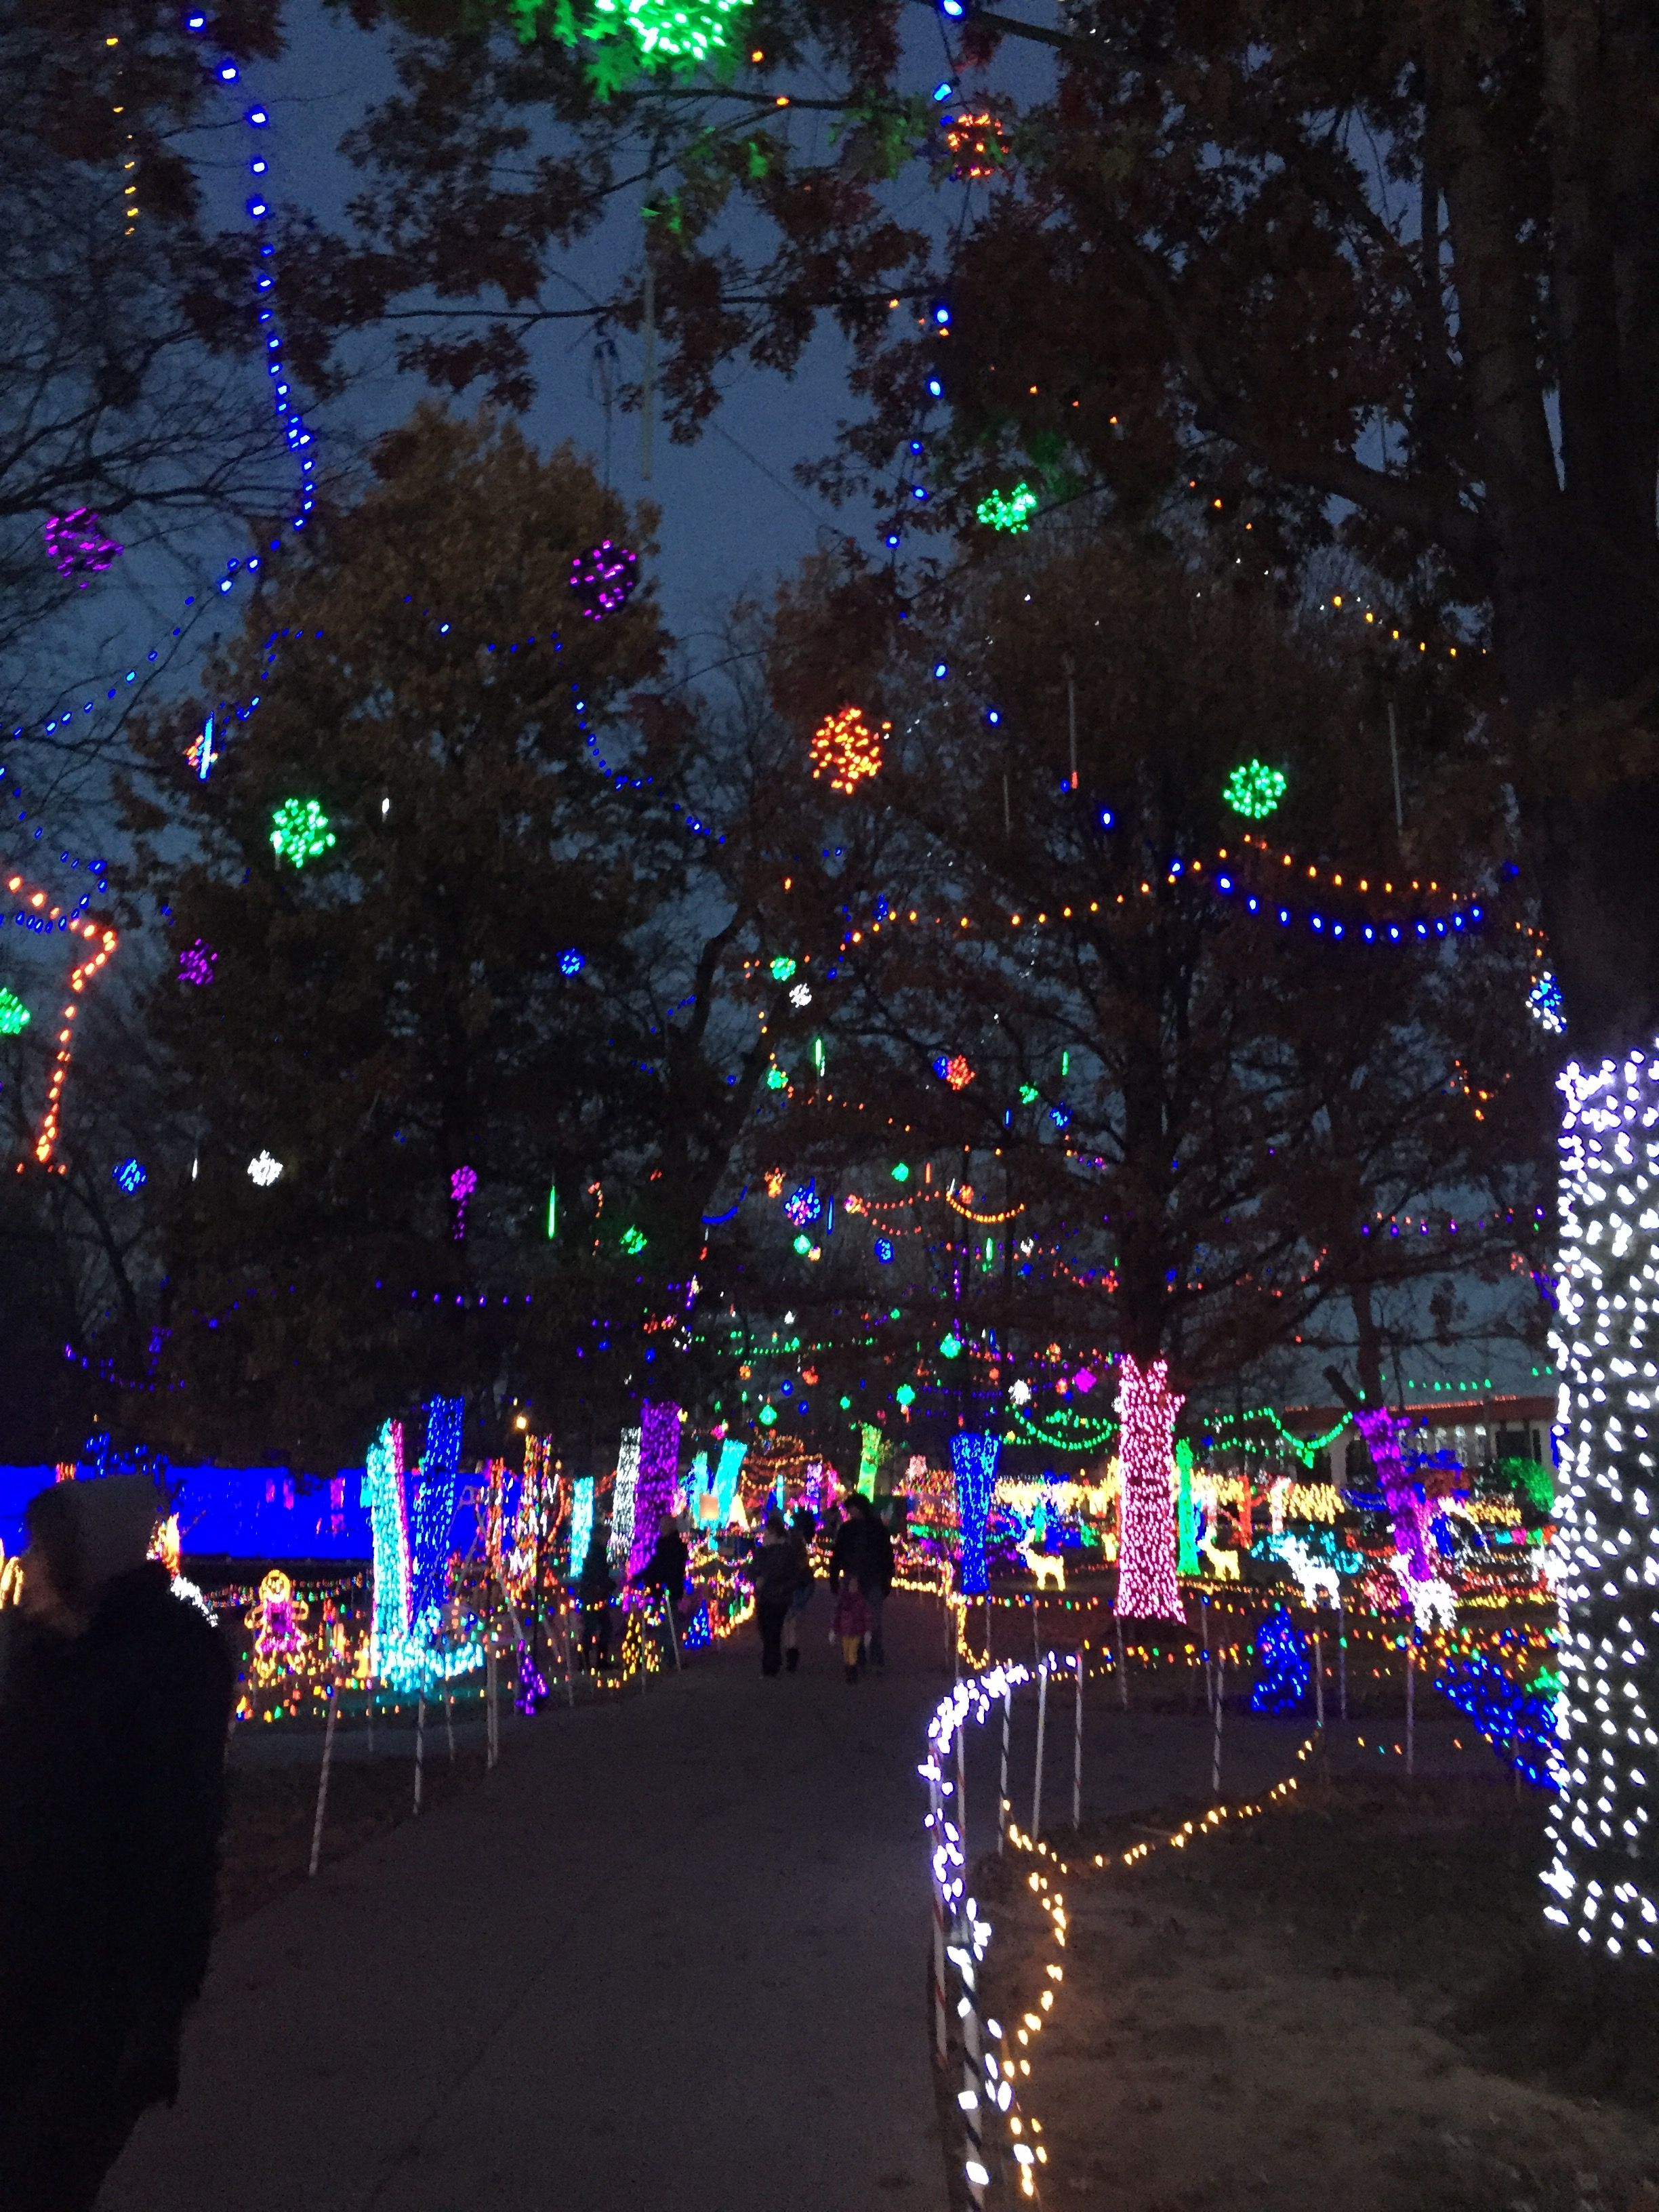 Rhema Christmas Lights.Rhema Christmas Lights Oh The Places I Will Go